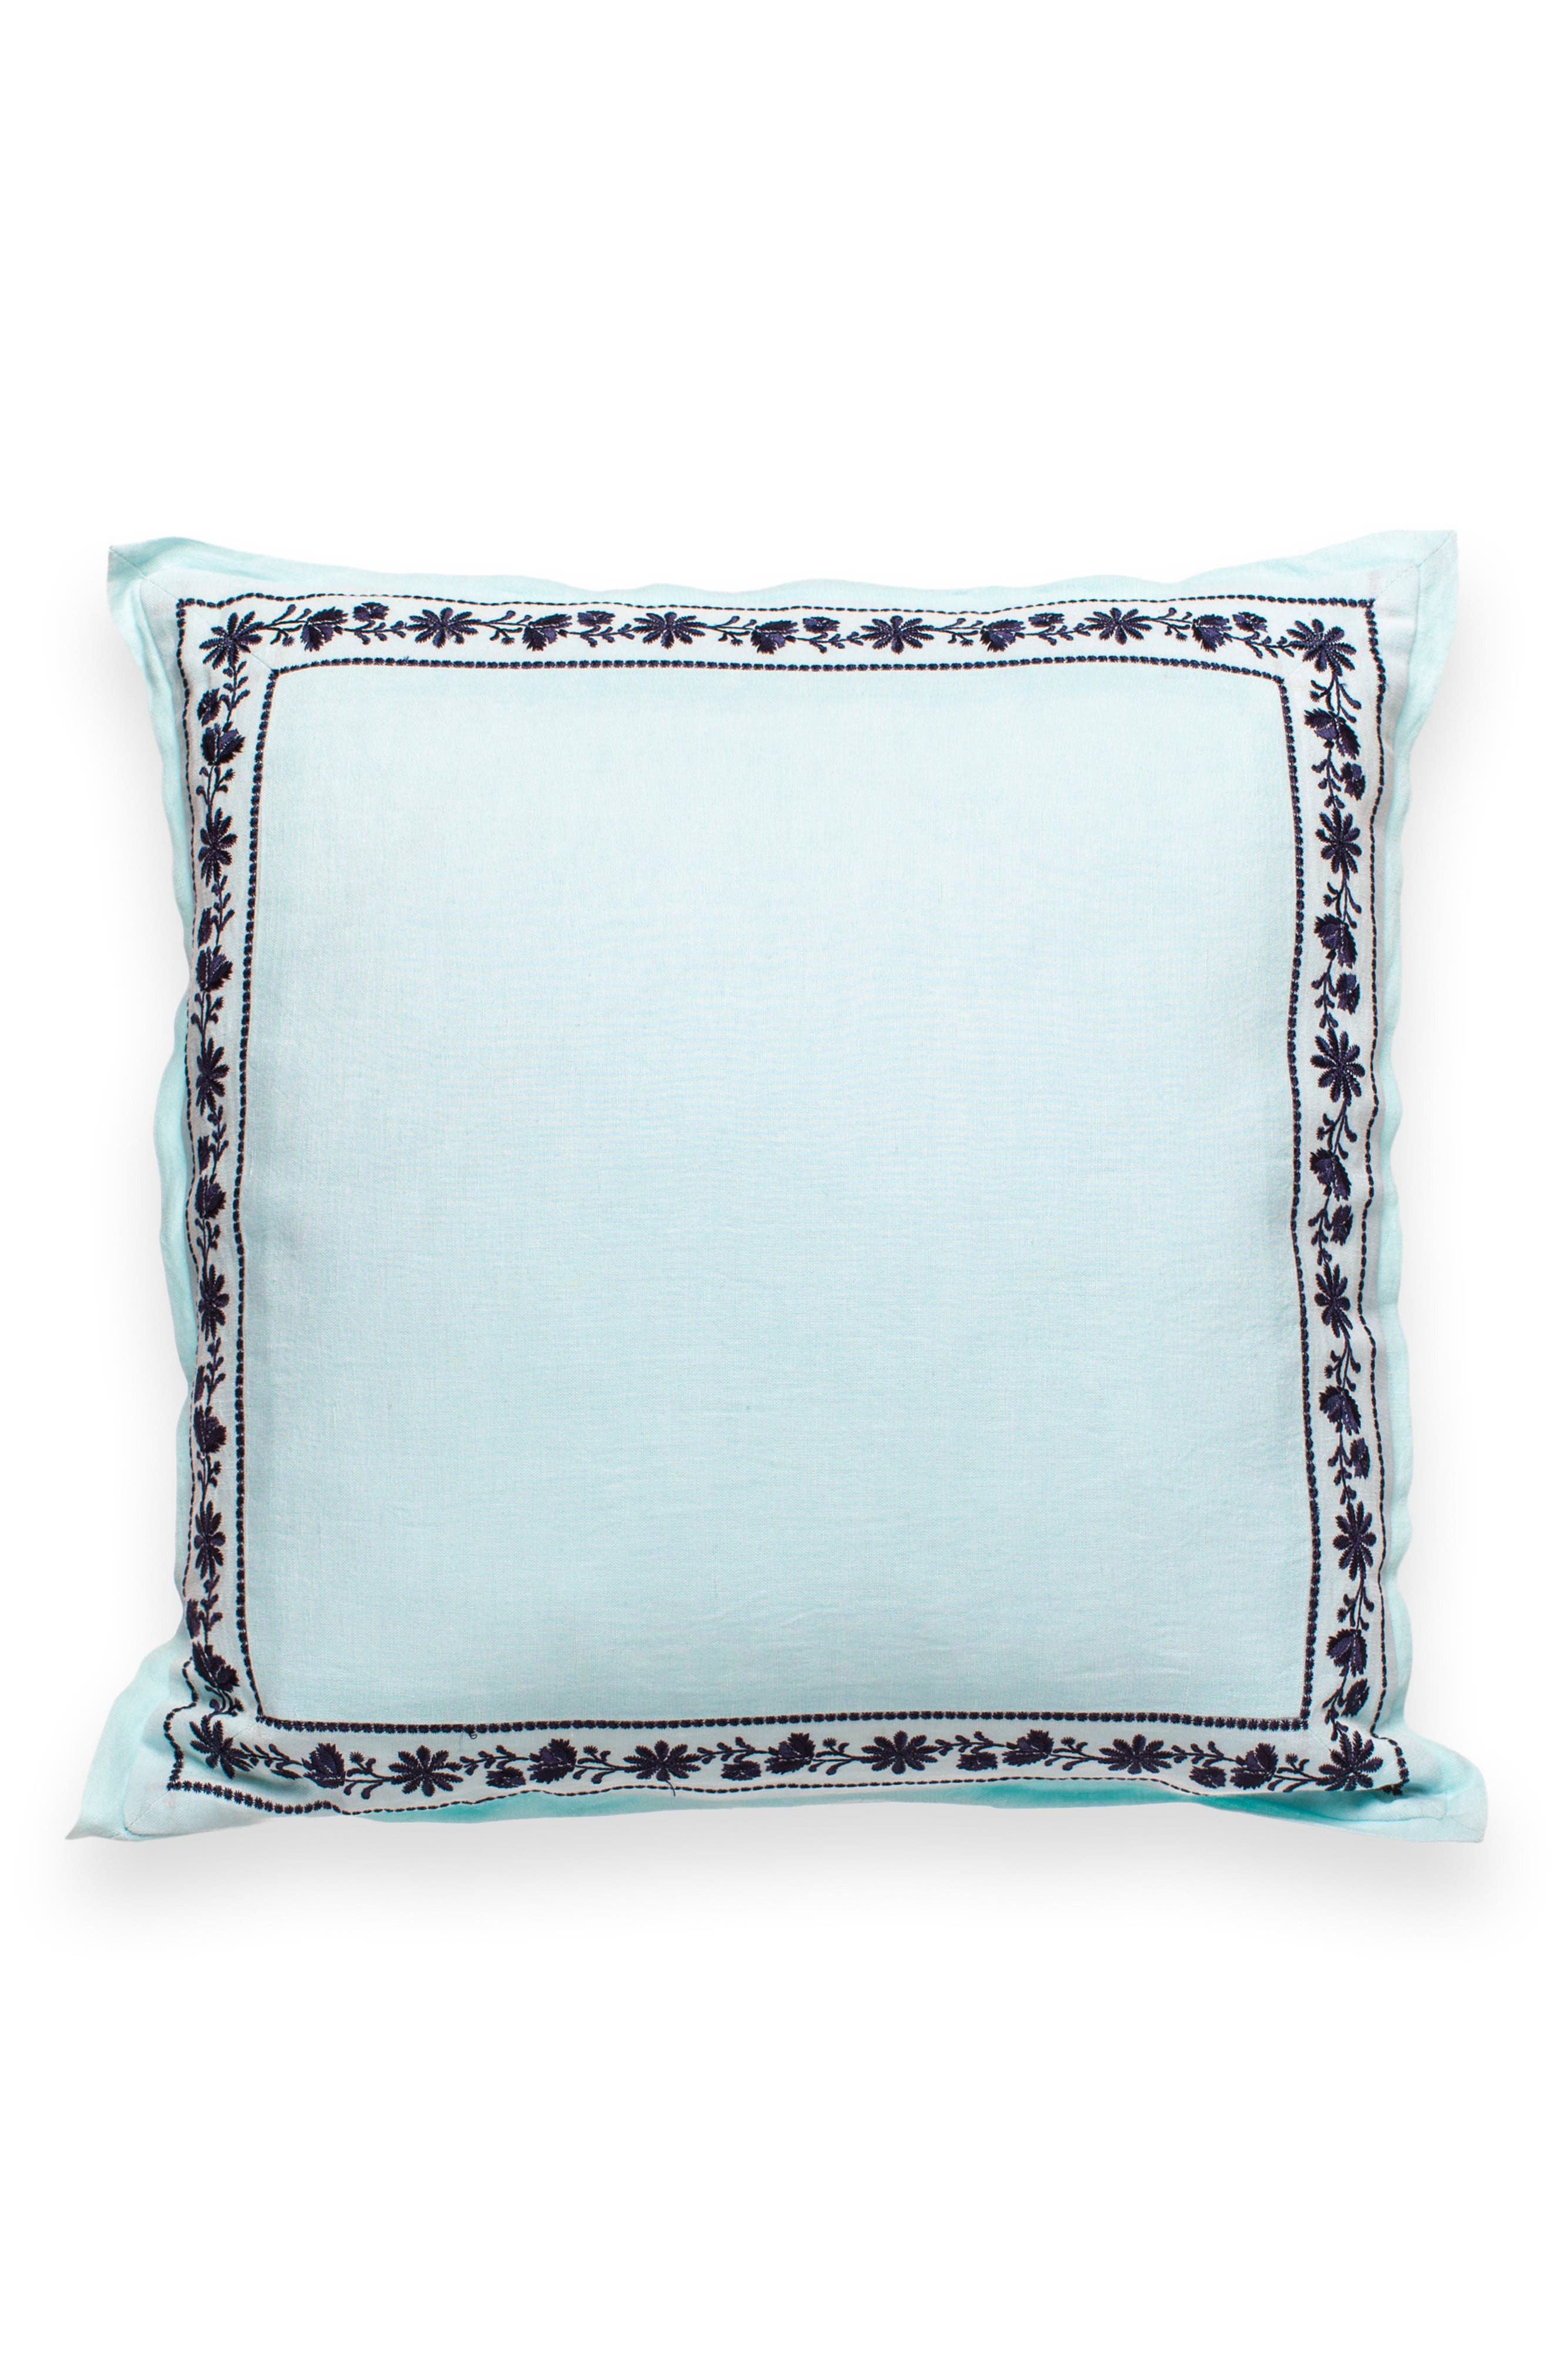 KATE SPADE NEW YORK,                             otami embroidered accent pillow,                             Main thumbnail 1, color,                             300